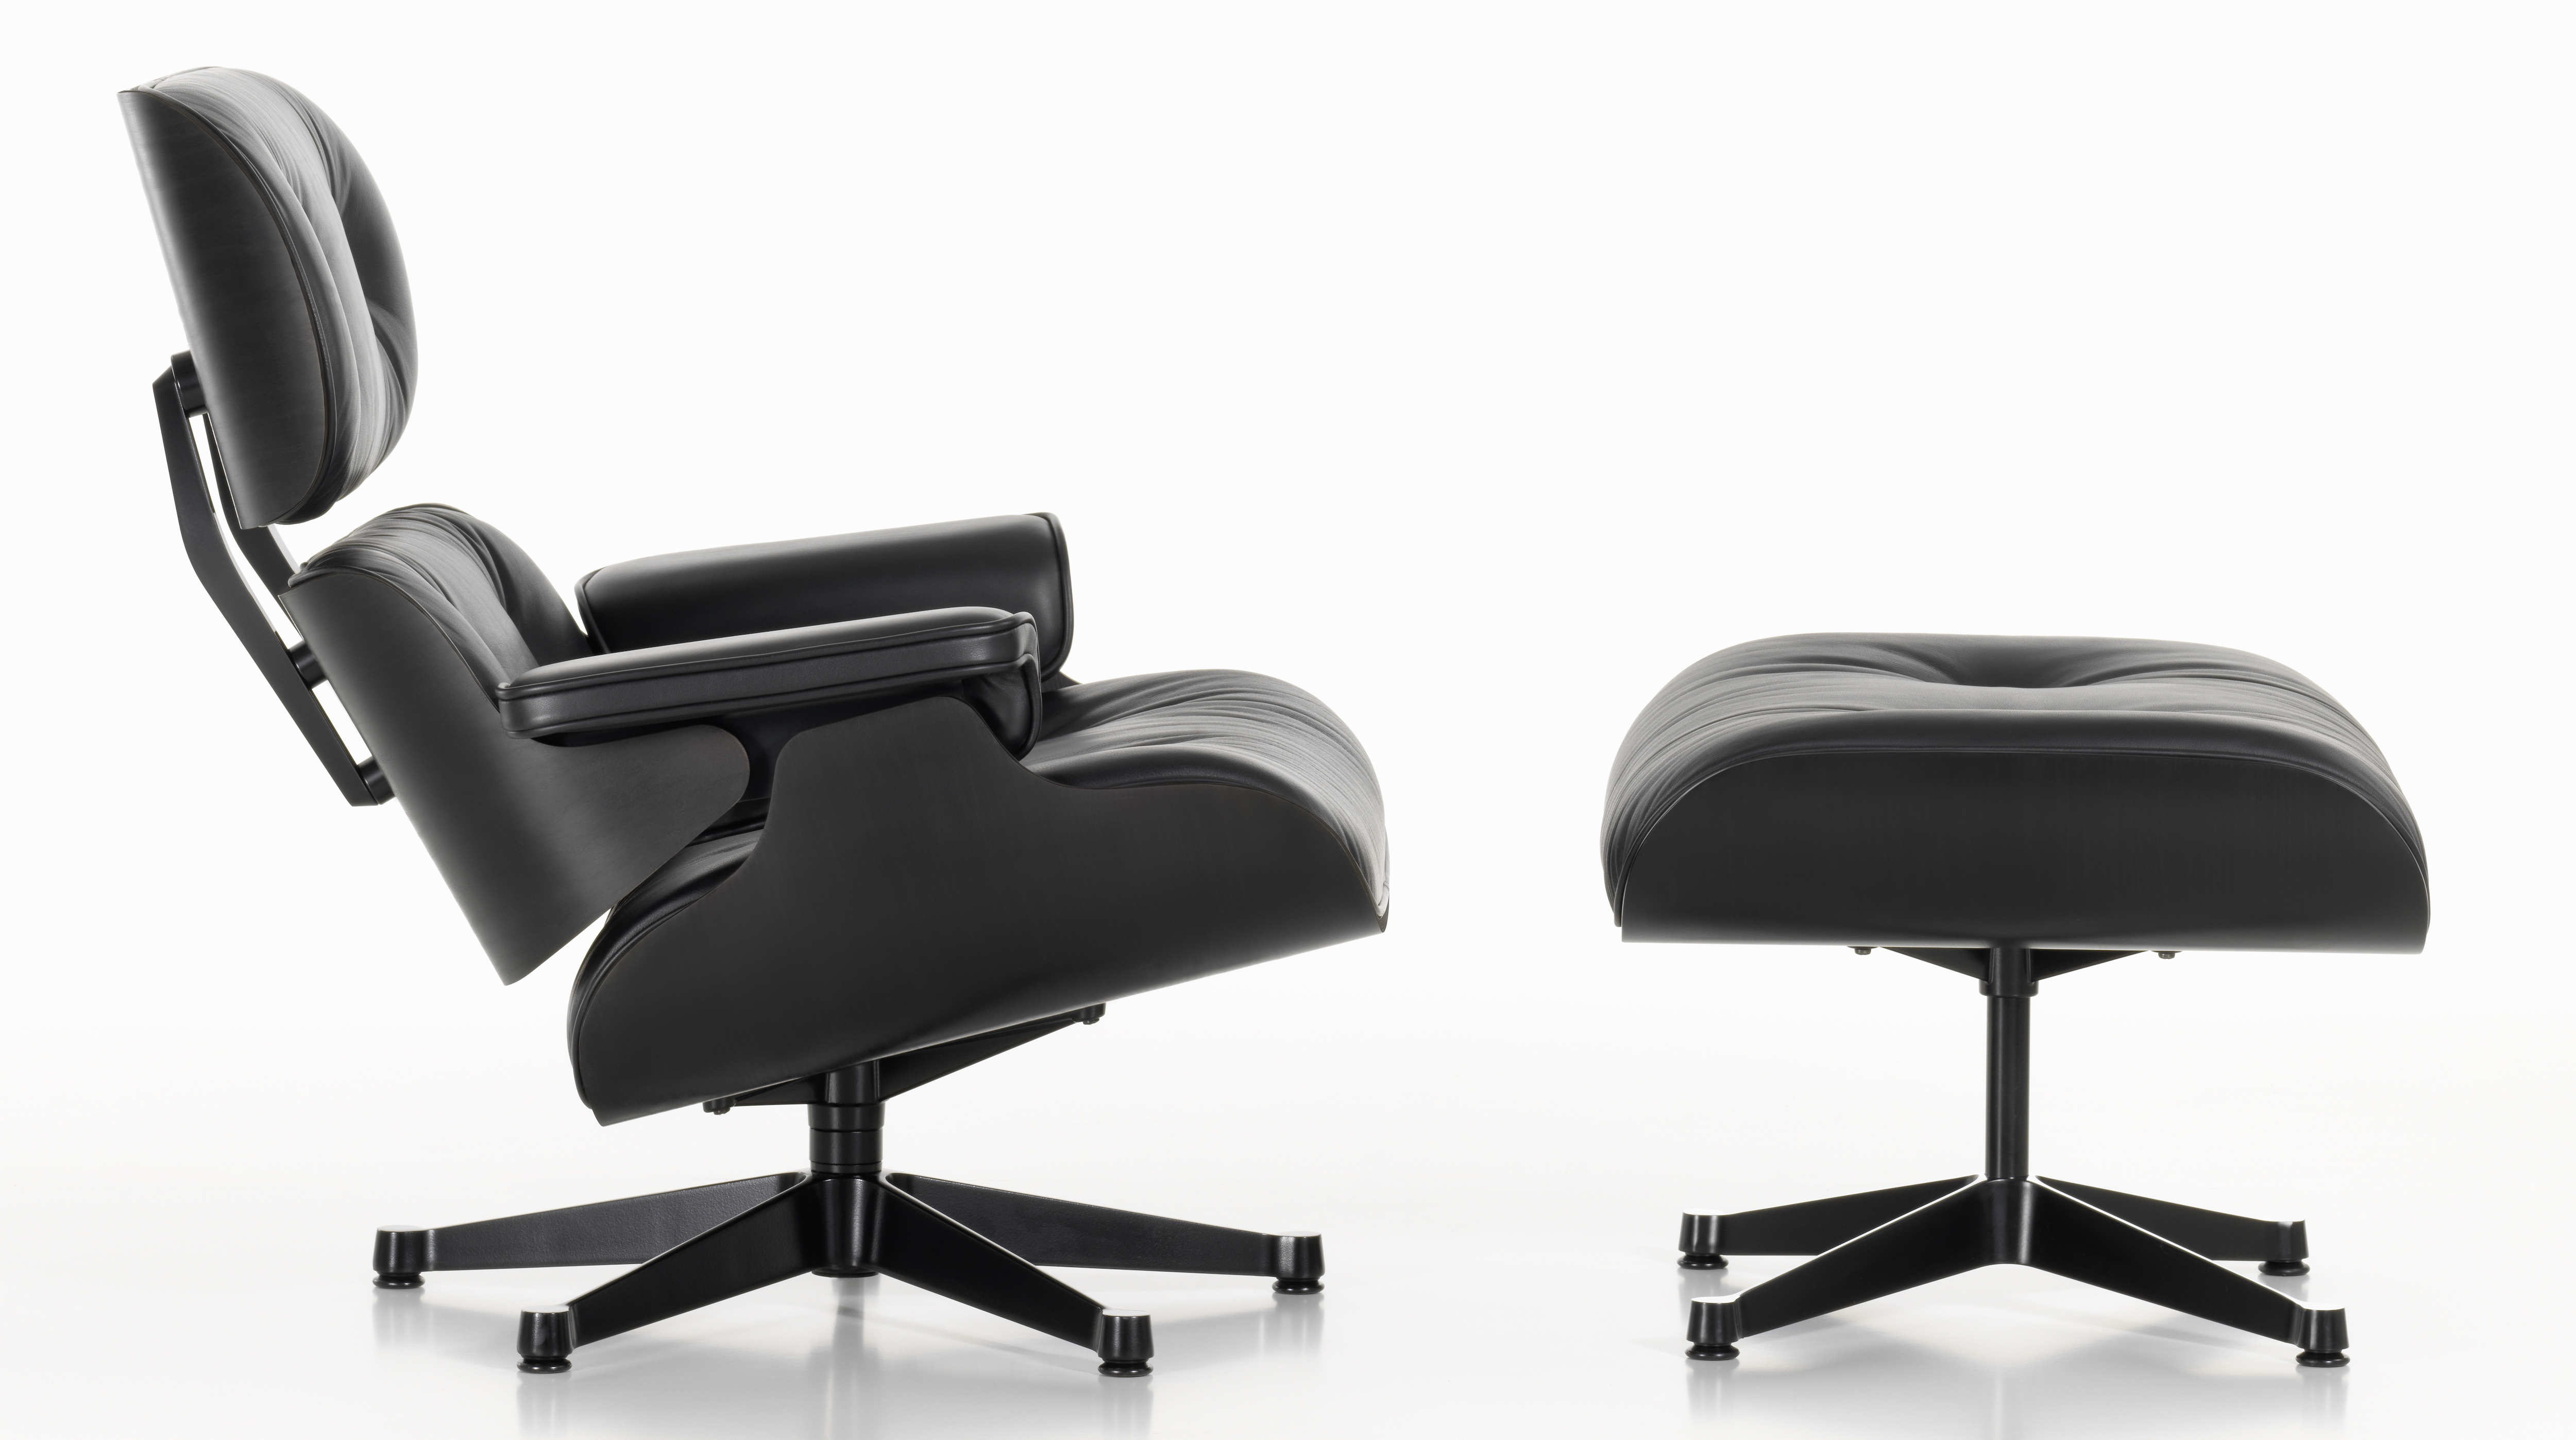 Strange Vitra Eames Lounge Chair Design Charles Et Ray Eames 1956 Alphanode Cool Chair Designs And Ideas Alphanodeonline